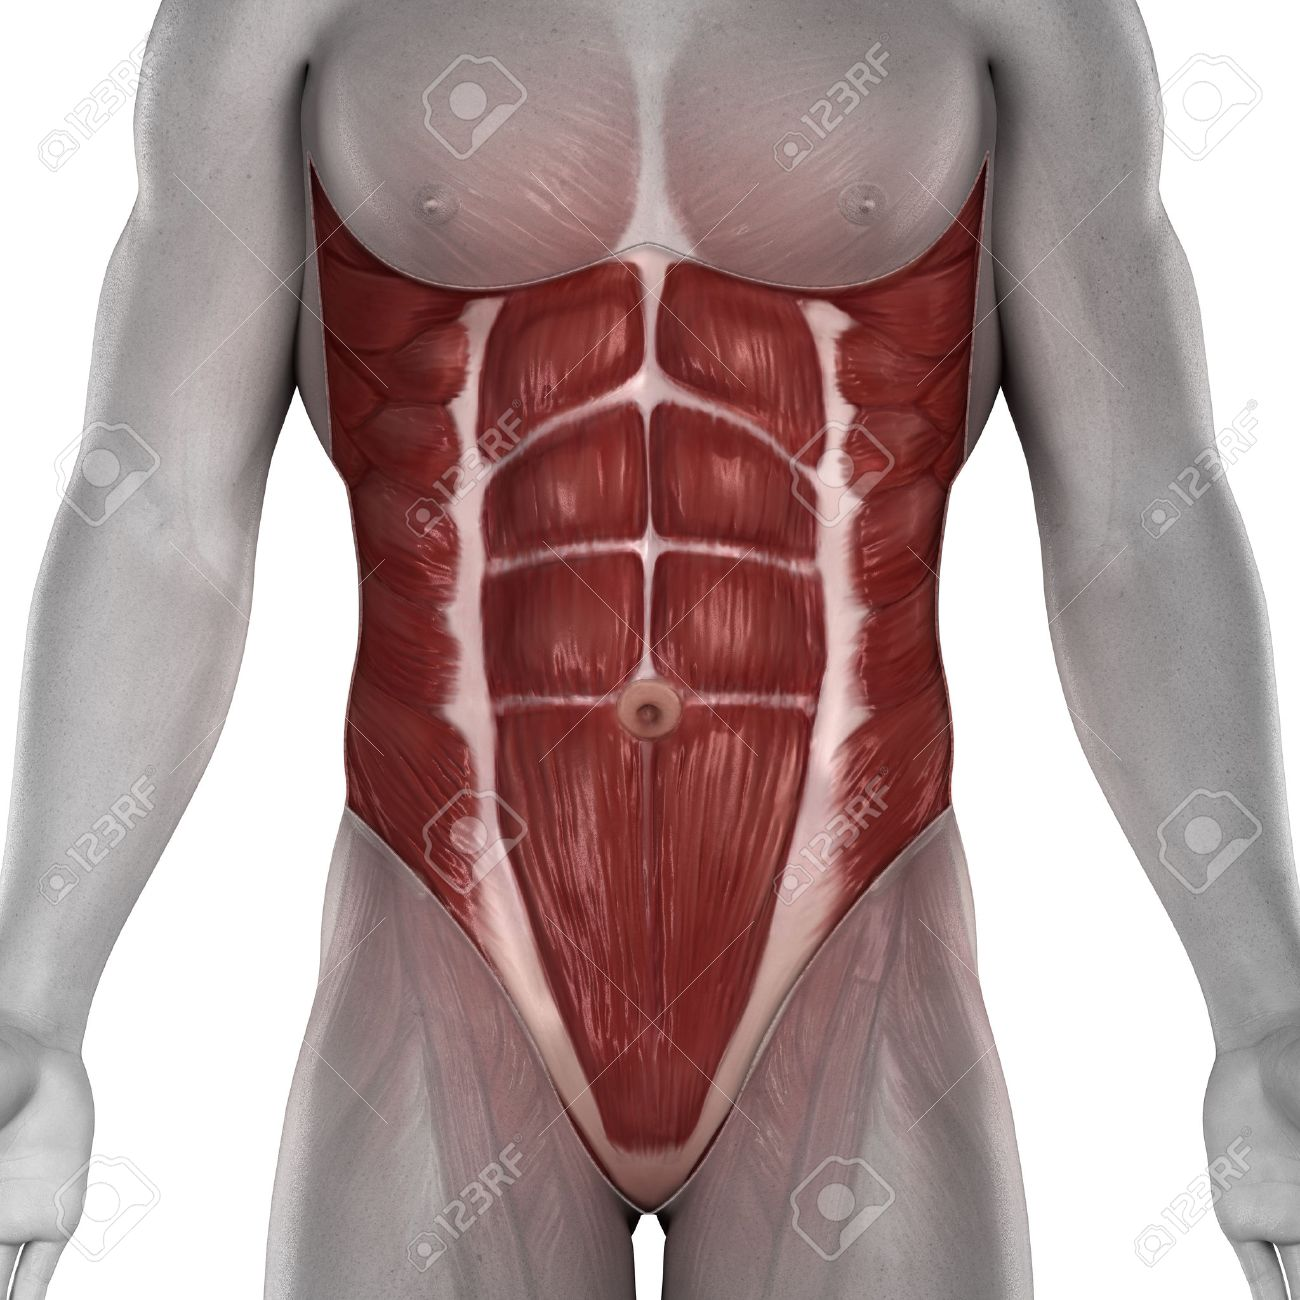 abdominal muscle images & stock pictures. royalty free abdominal, Human Body